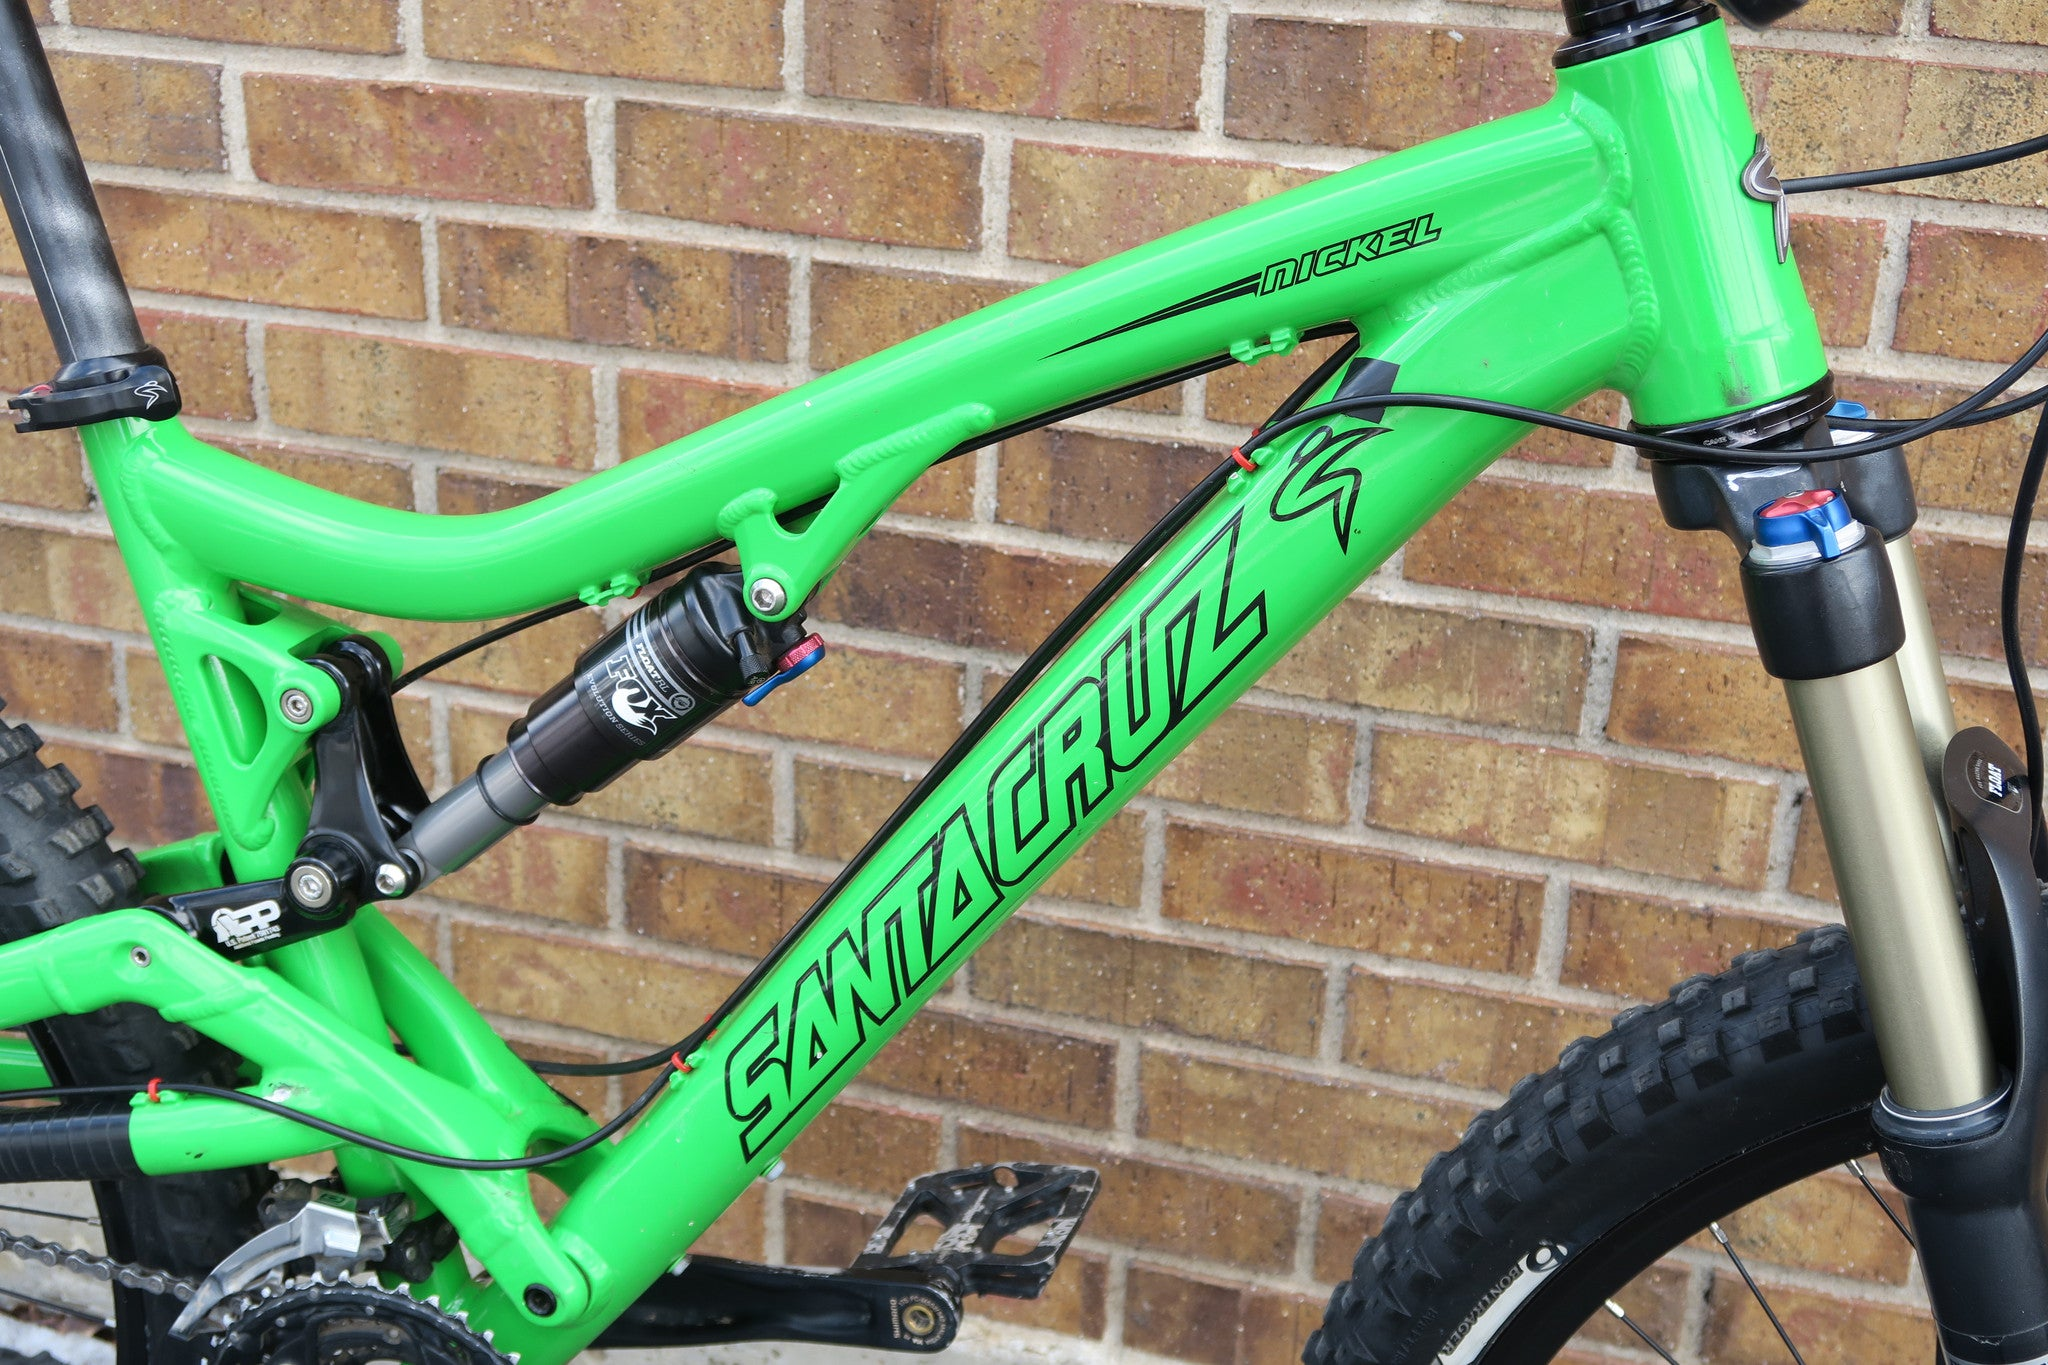 2012 SANTA CRUZ NICKEL 26